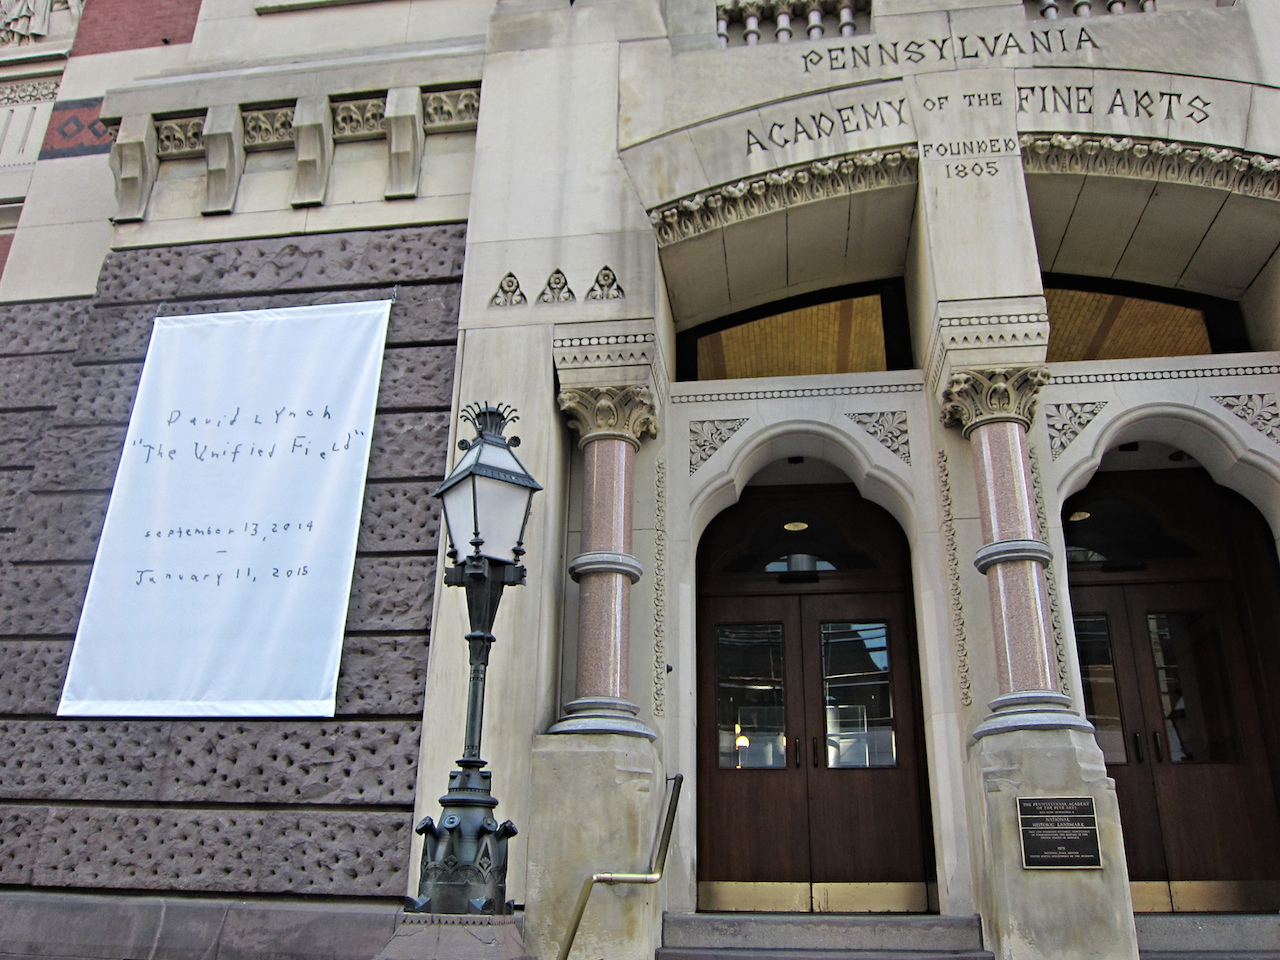 Exterior of the Pennsylvania Academy of the Fine Arts